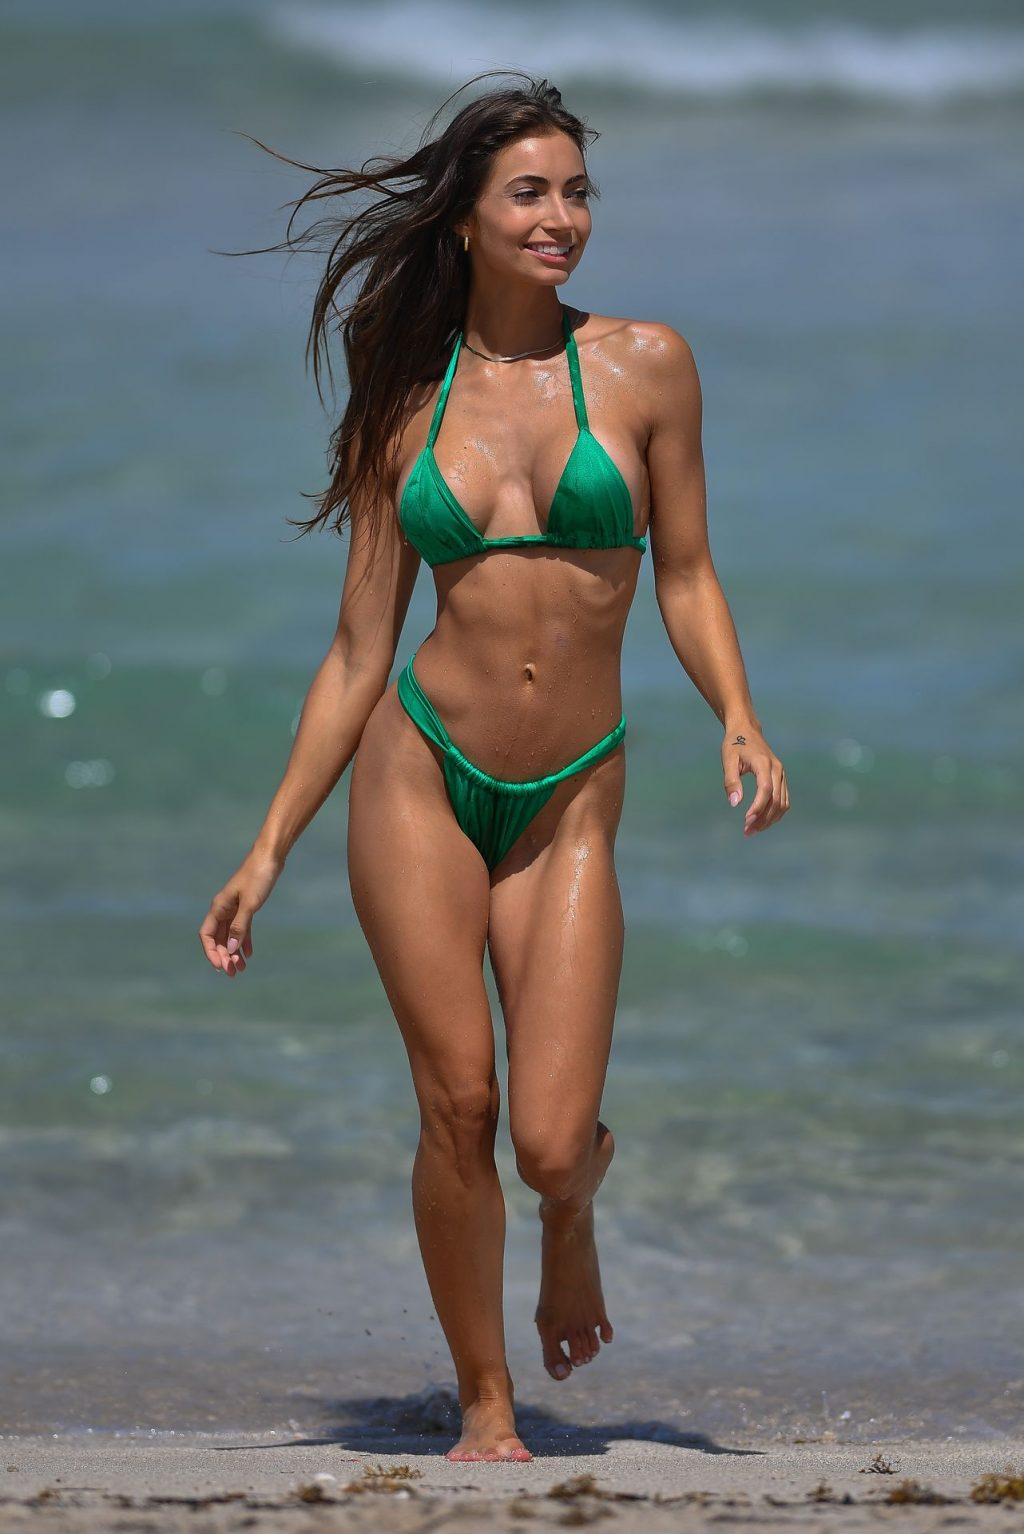 Anna Louise Shows Off Her Sexy Body in a Green Bikini on the Beach in Miami (14 Photos)